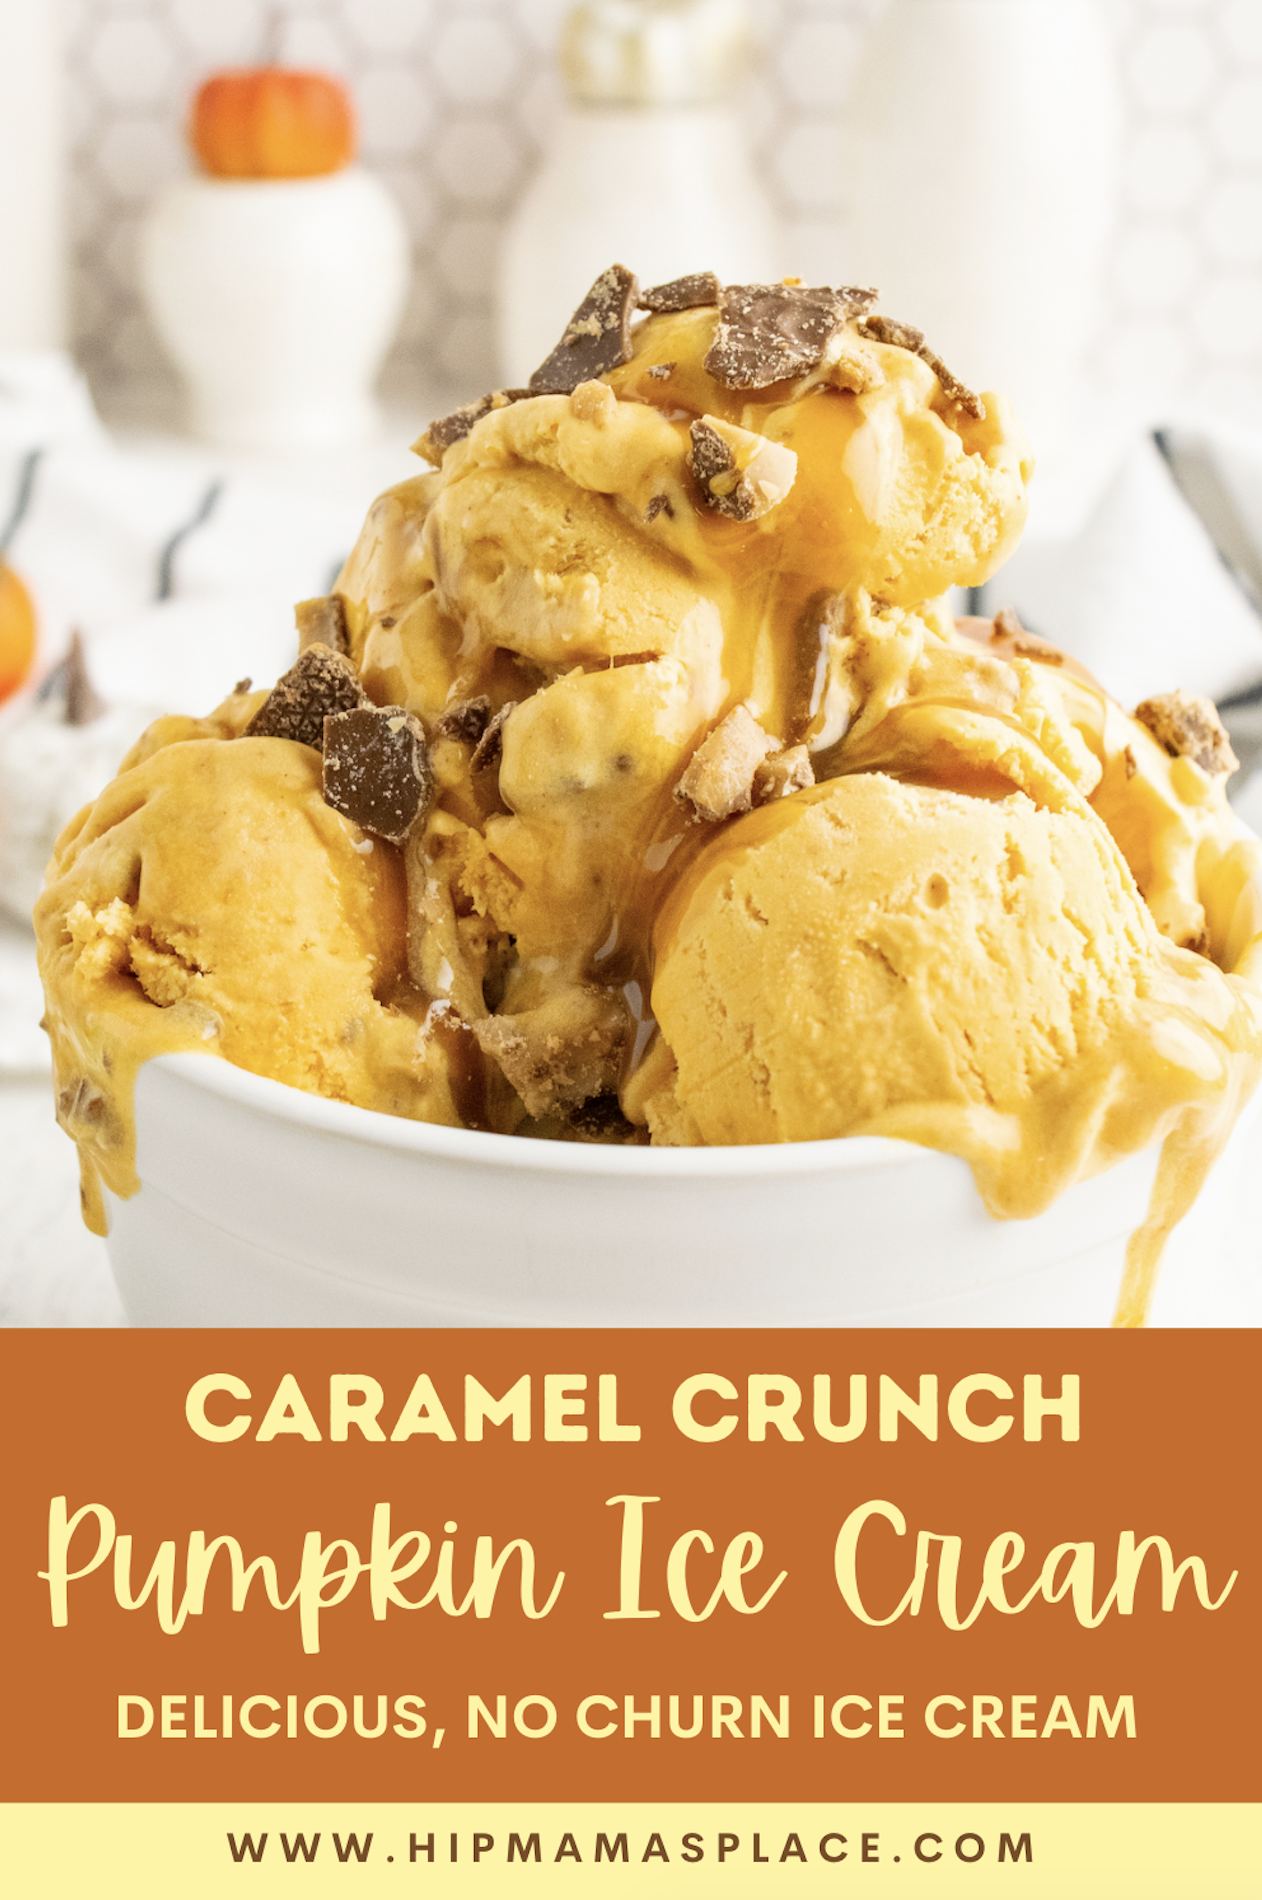 This easy, delicious, no churn caramel crunch pumpkin ice cream is a perfect dessert for any day- not just during pumpkin season!